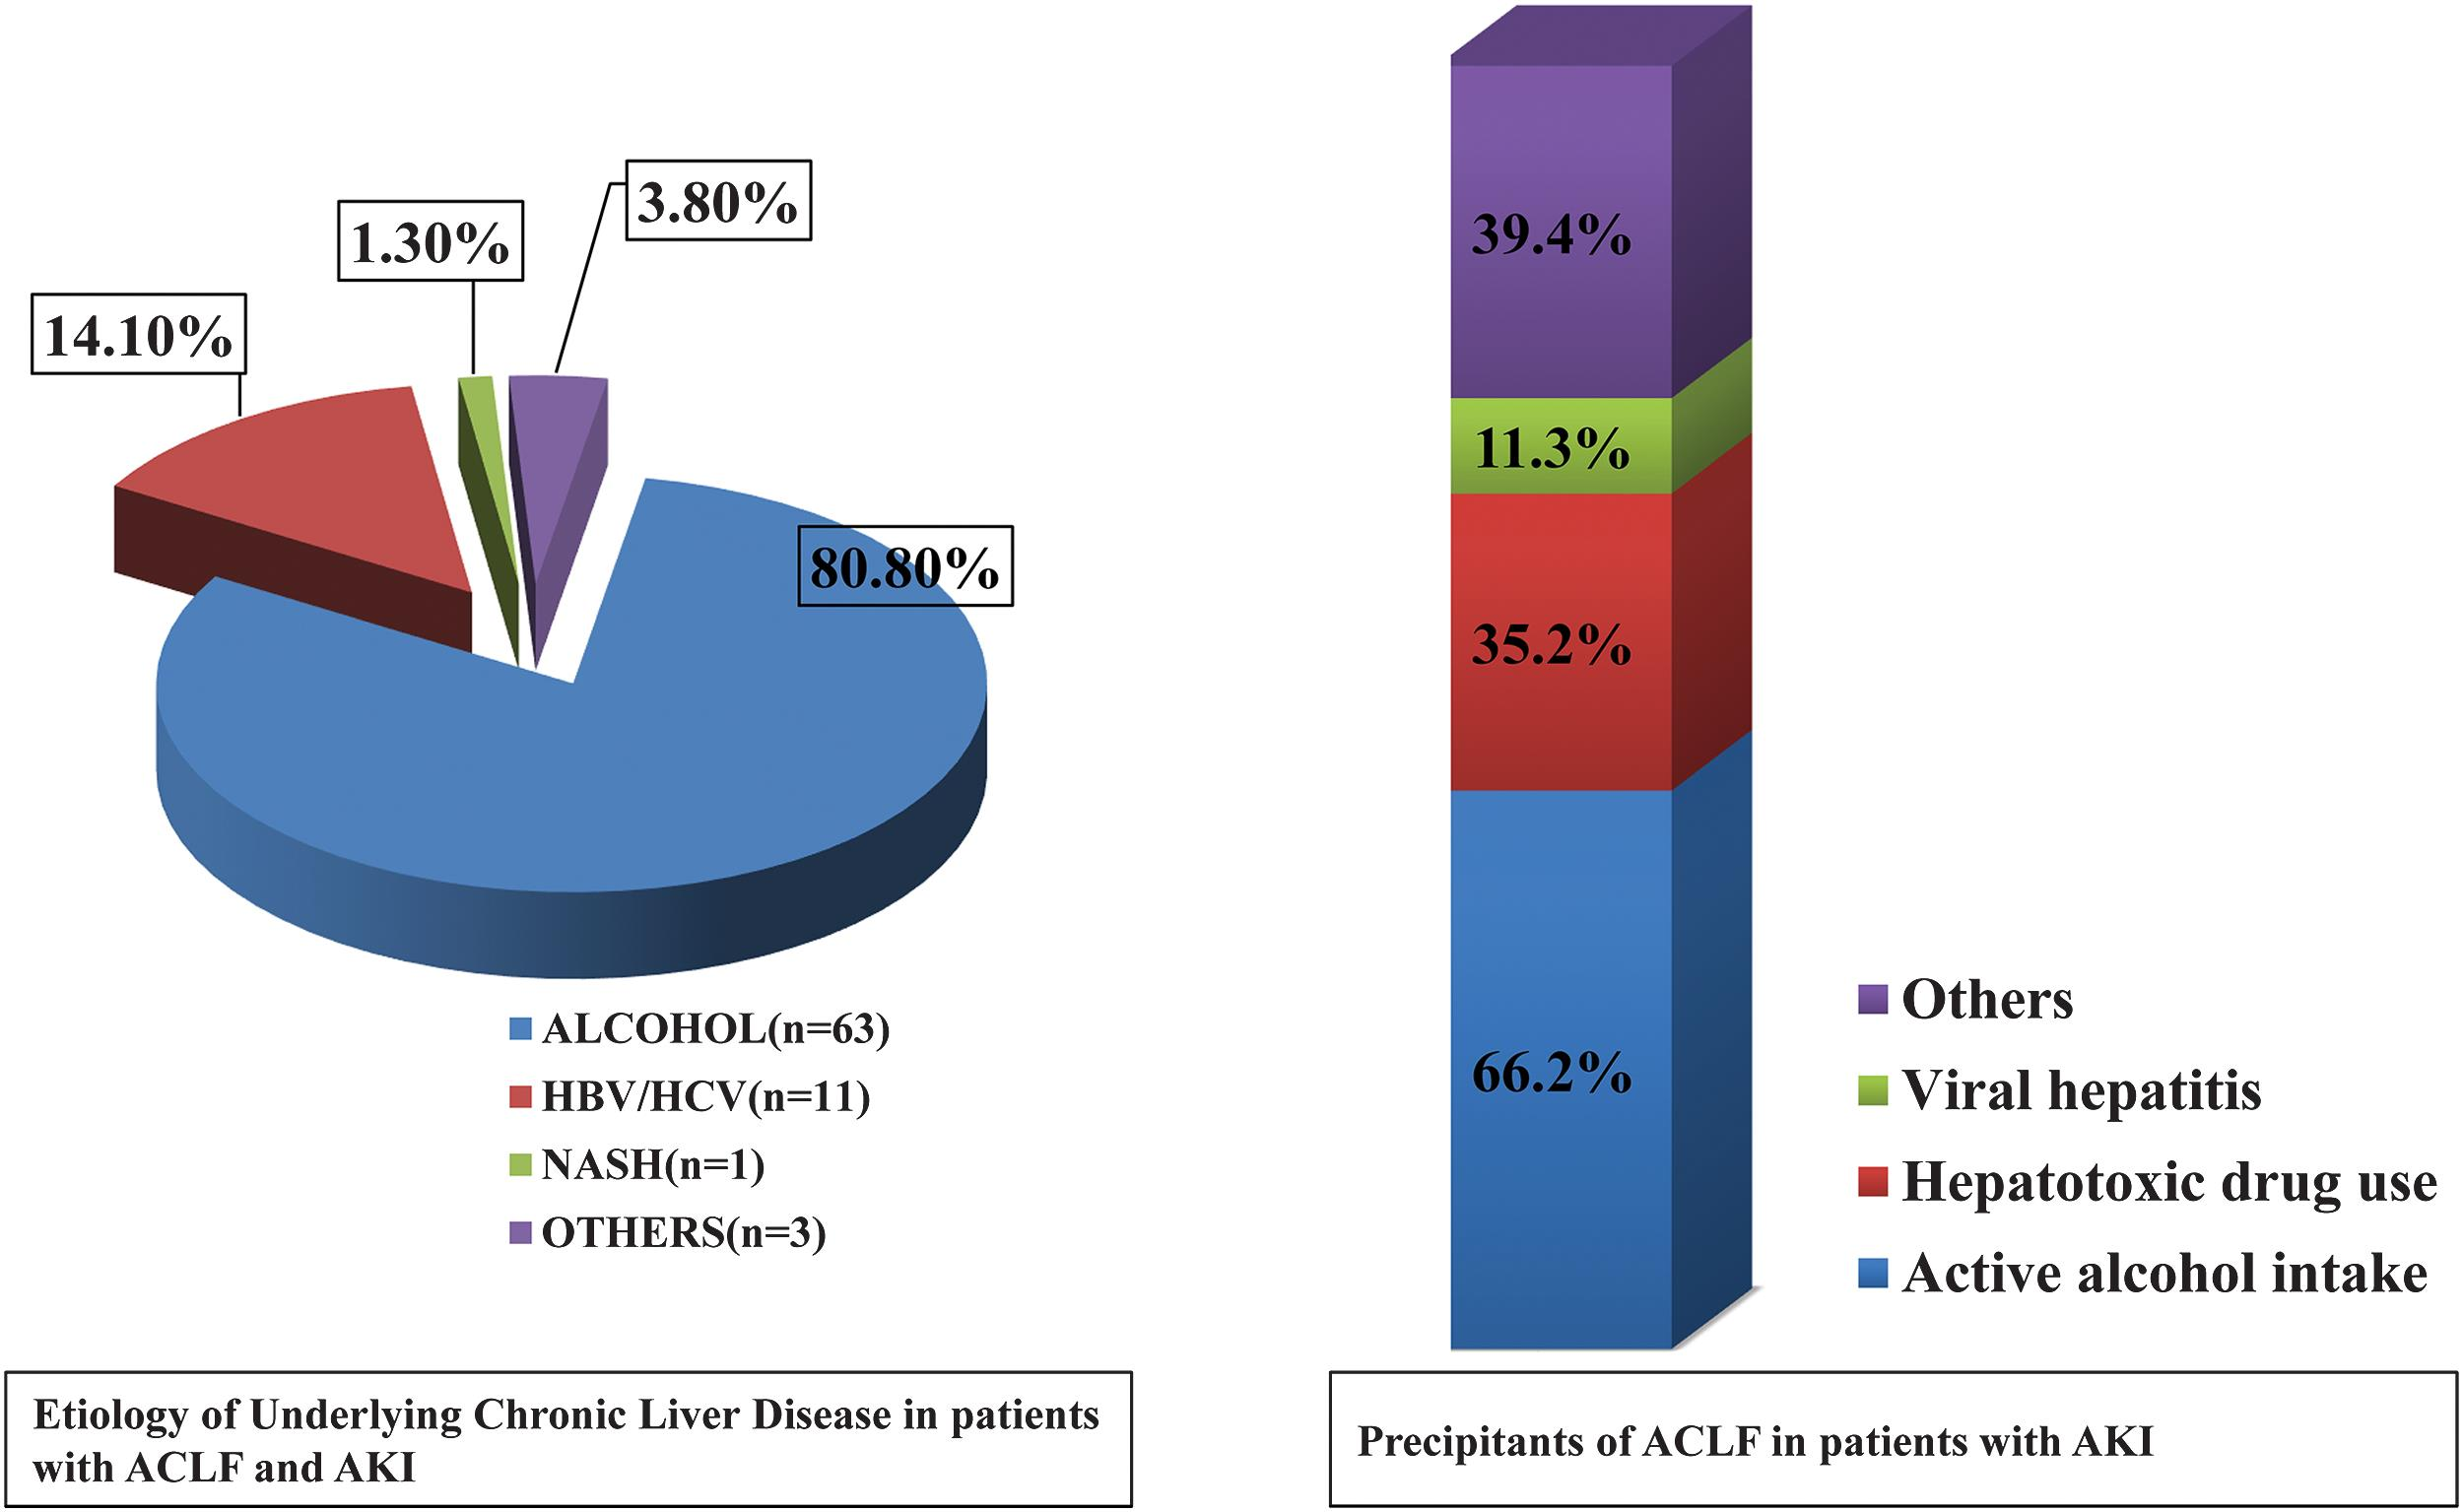 Etiology of underlying chronic liver disease and the precipitants in ACLF patients with AKI.